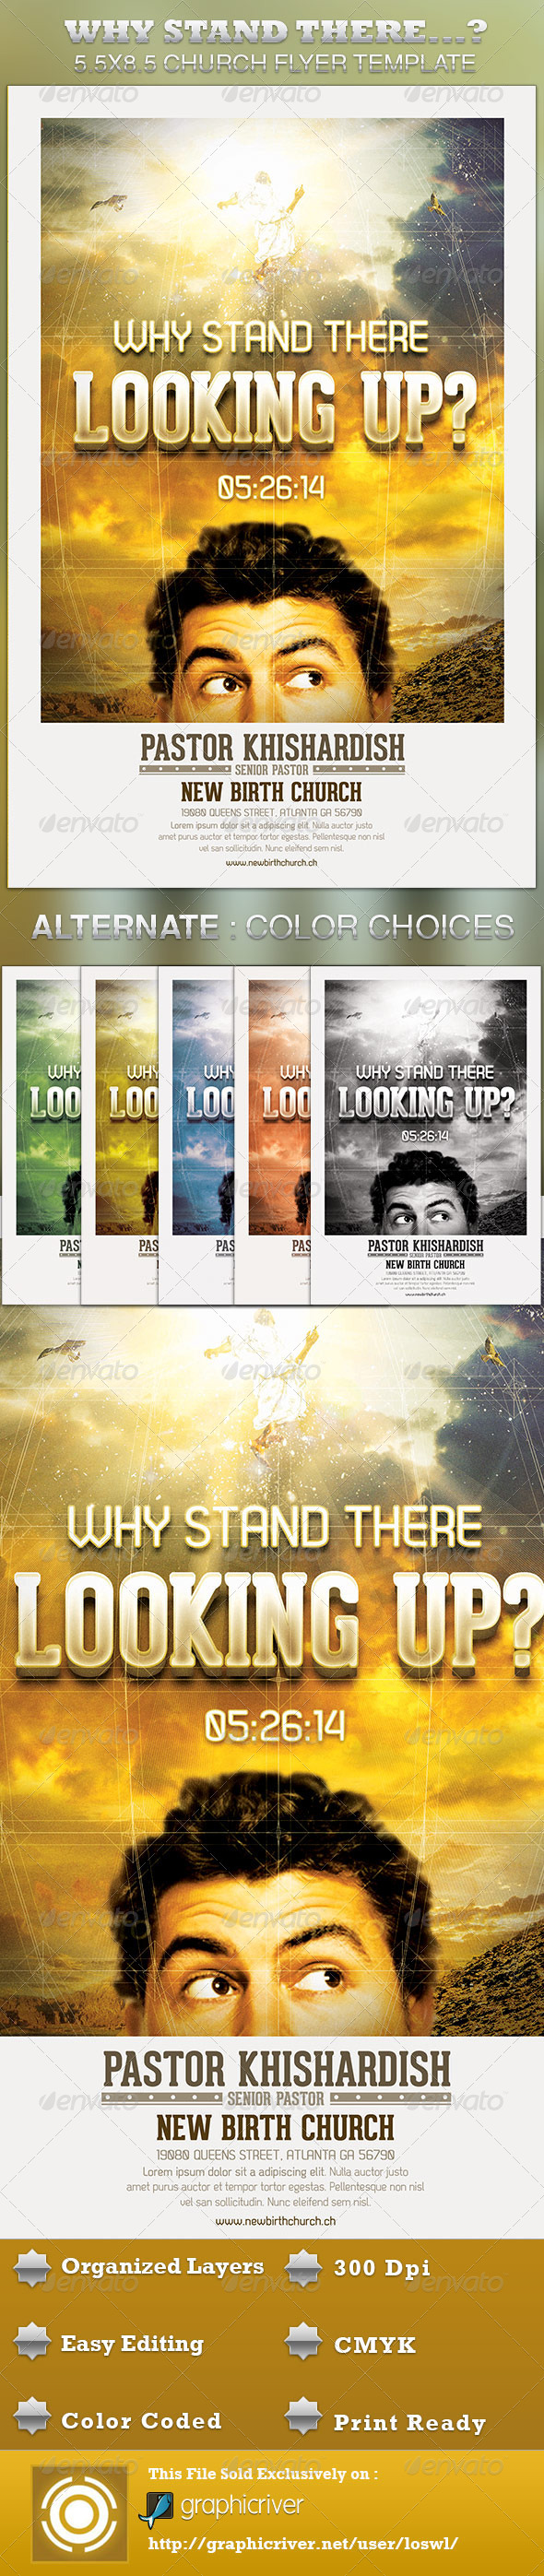 GraphicRiver Why Stand There Looking Up Church Flyer Template 4491973